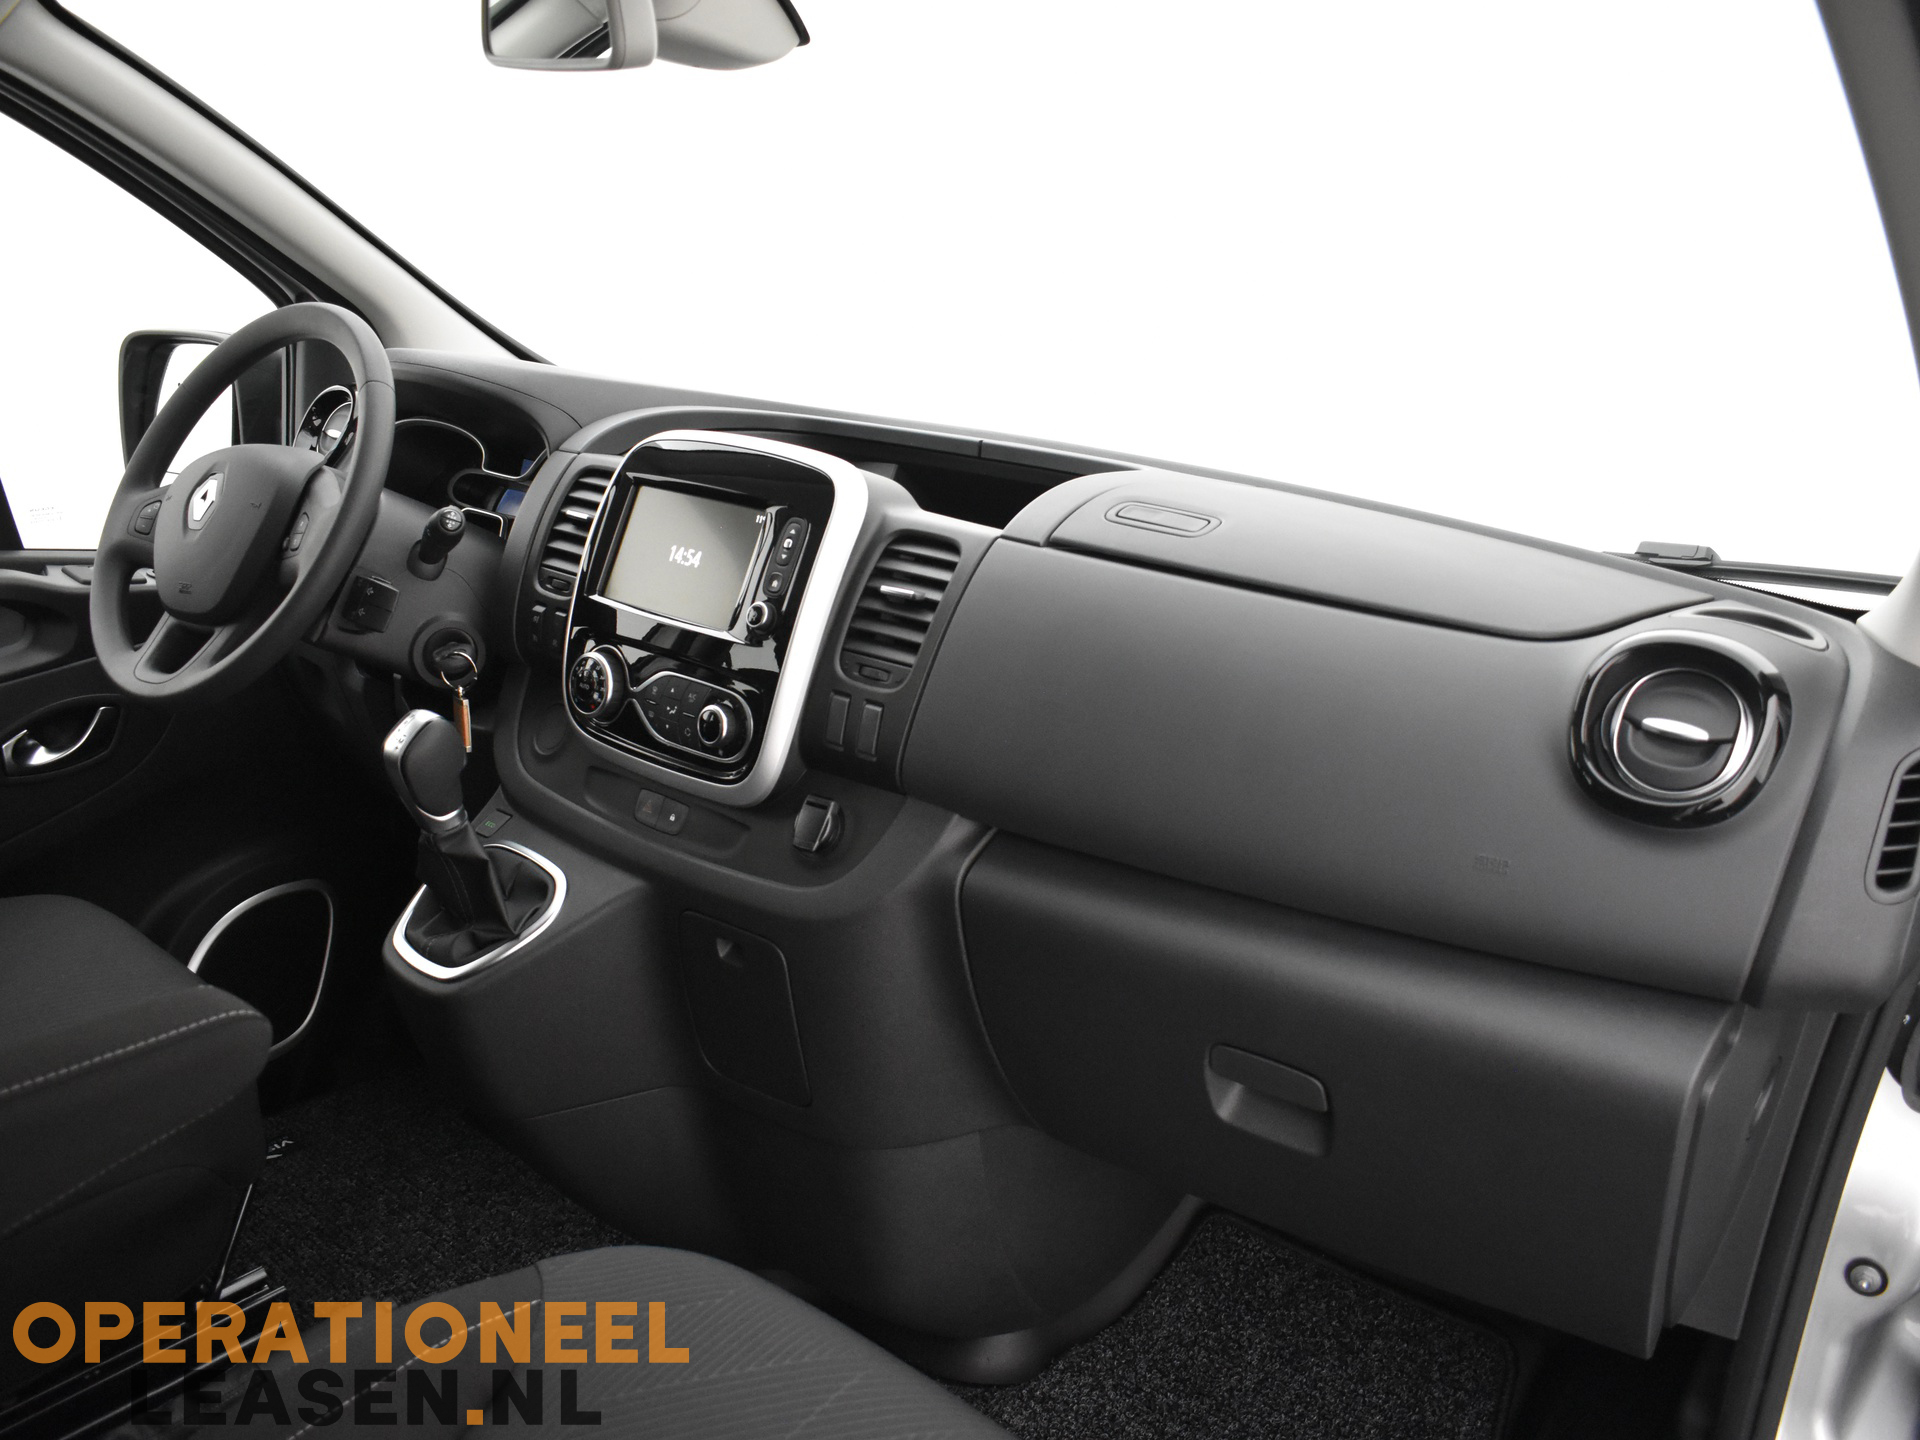 Operational lease Renault master traffic-5